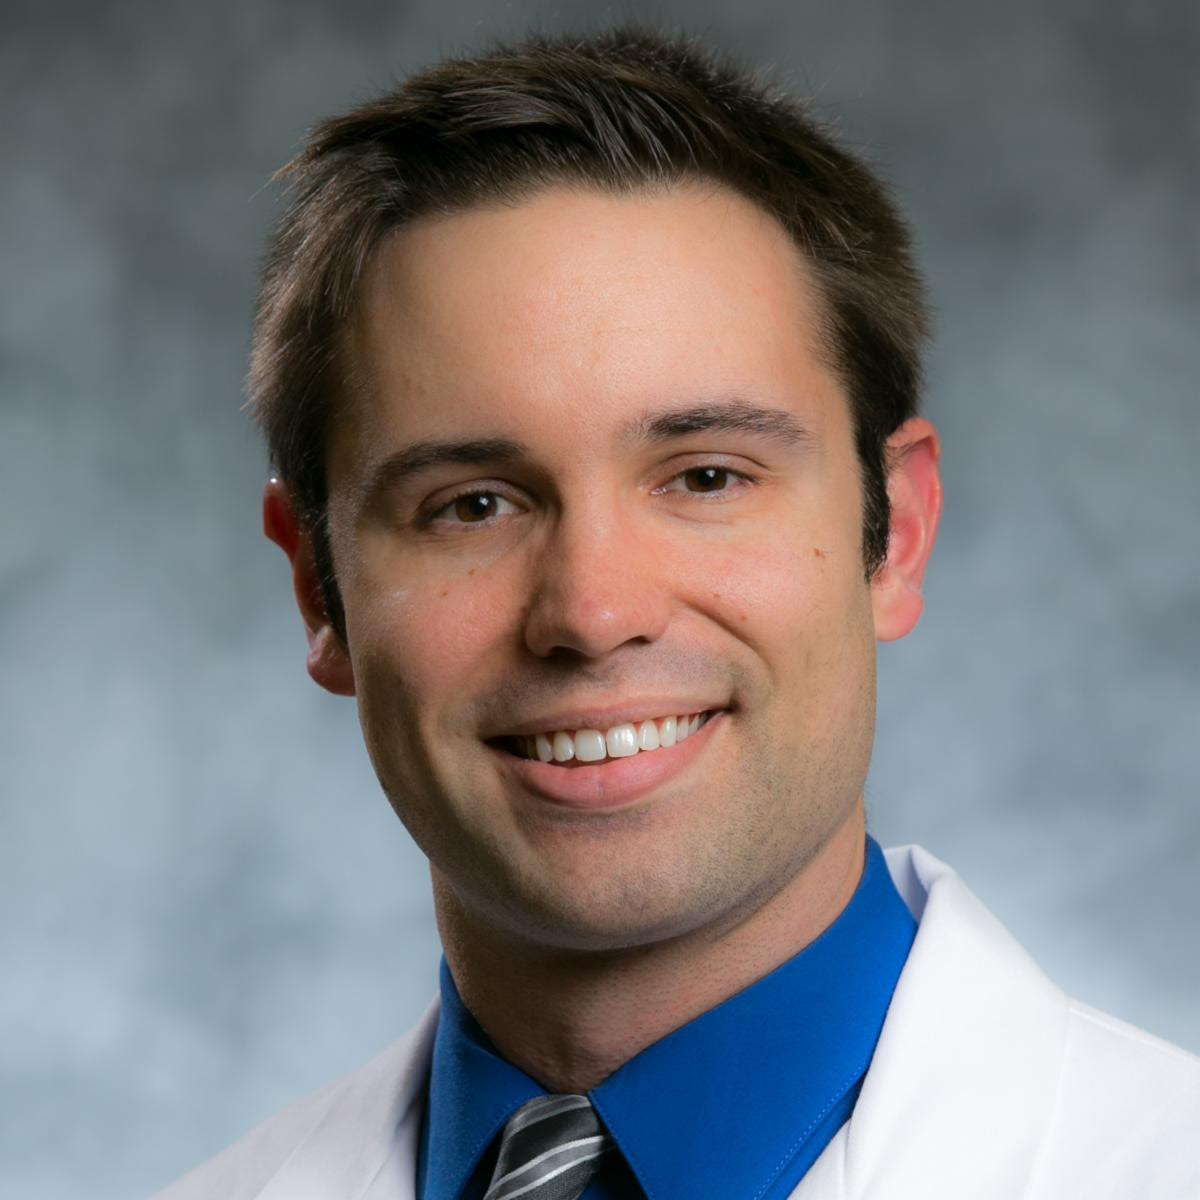 A.T. Still University-Kirksville College of Osteopathic Medicine student Bryan Roberts has been honored by the Missouri Association of Osteopathic Physicians and Surgeons